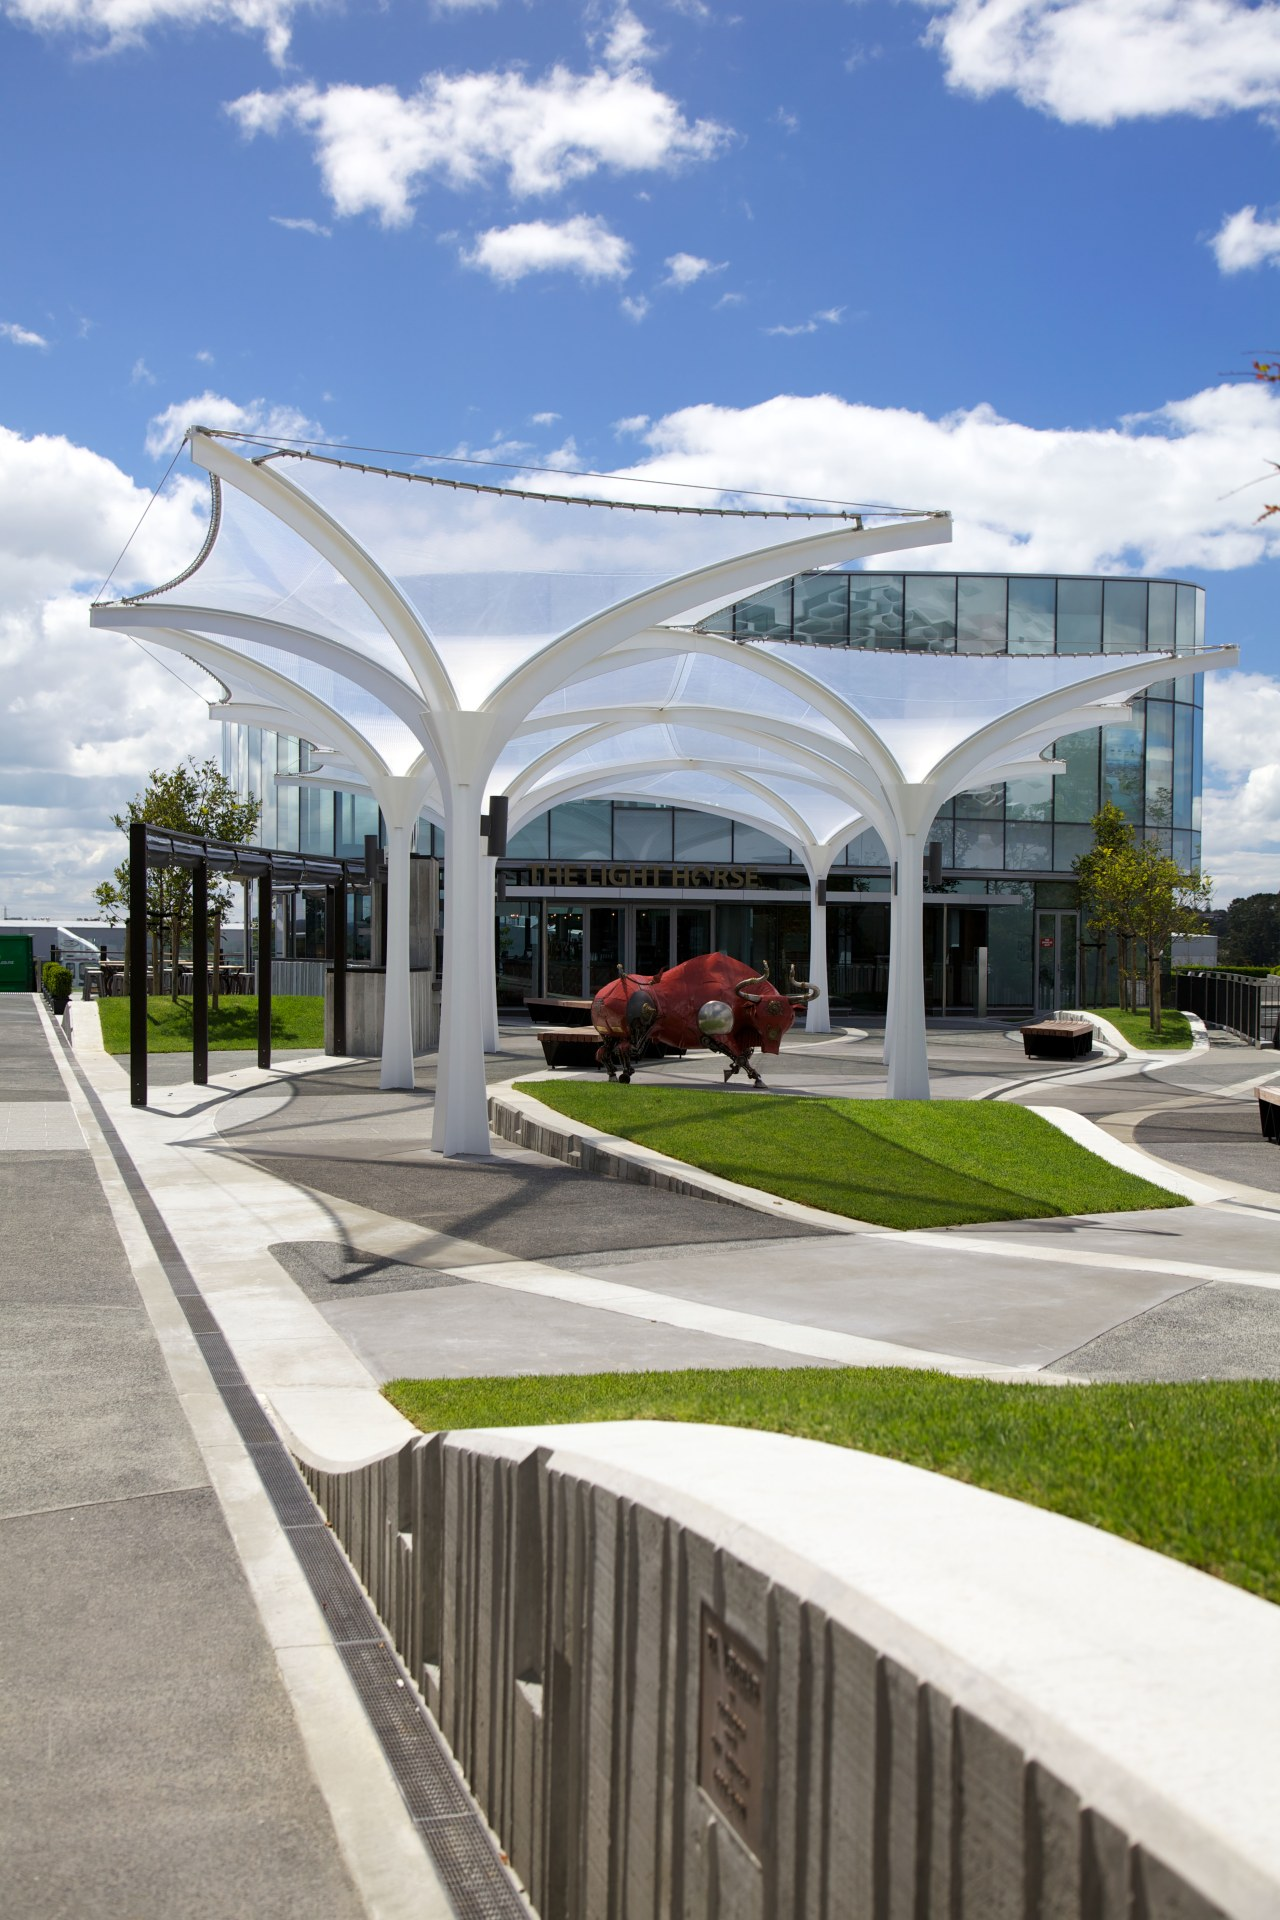 Mace Contractors were responsible for all the landscaping architecture, building, corporate headquarters, mixed use, real estate, residential area, structure, white